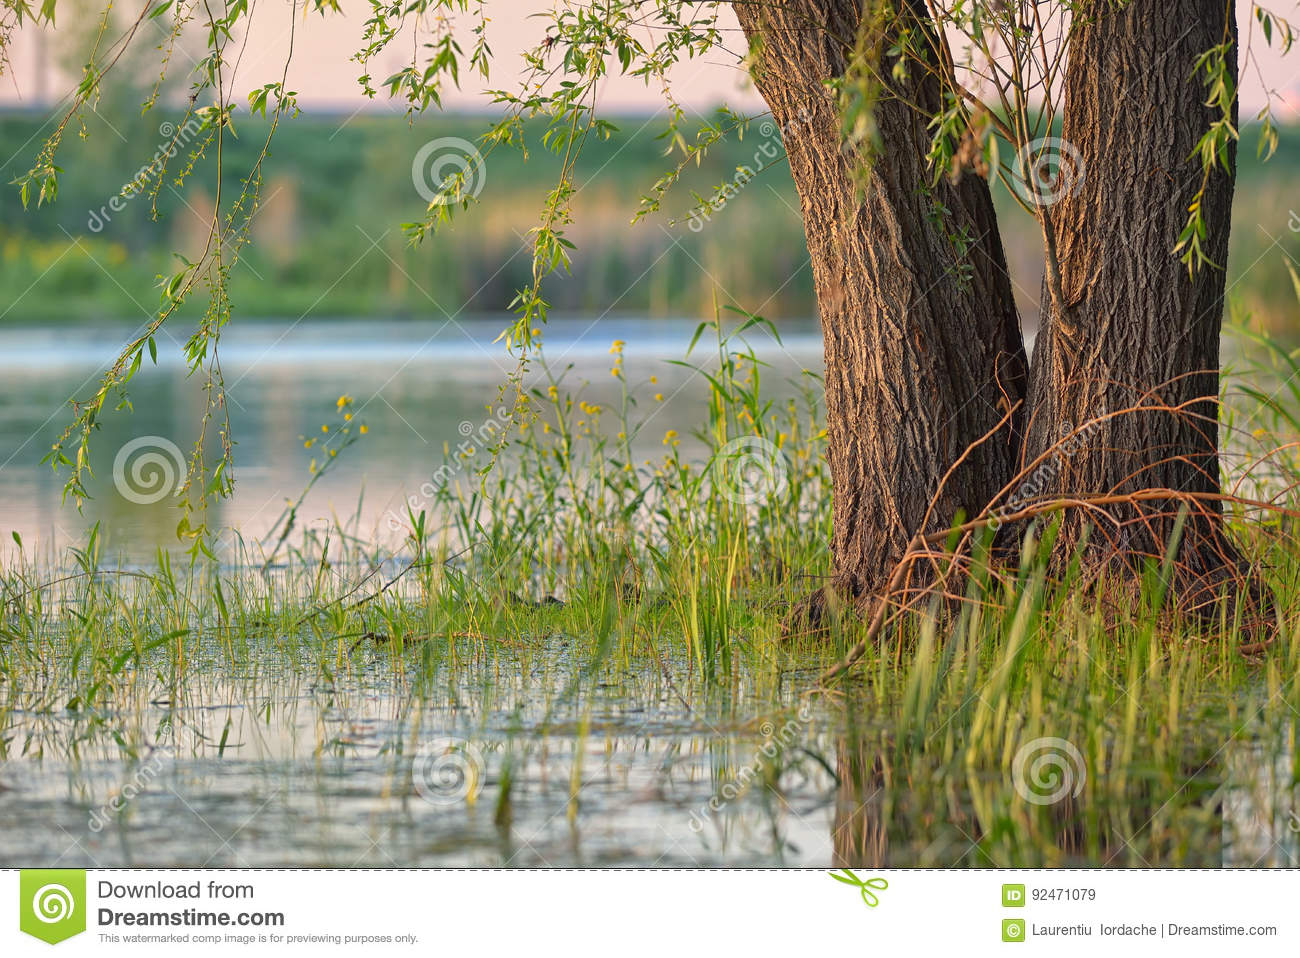 Weeping willow in a swamp